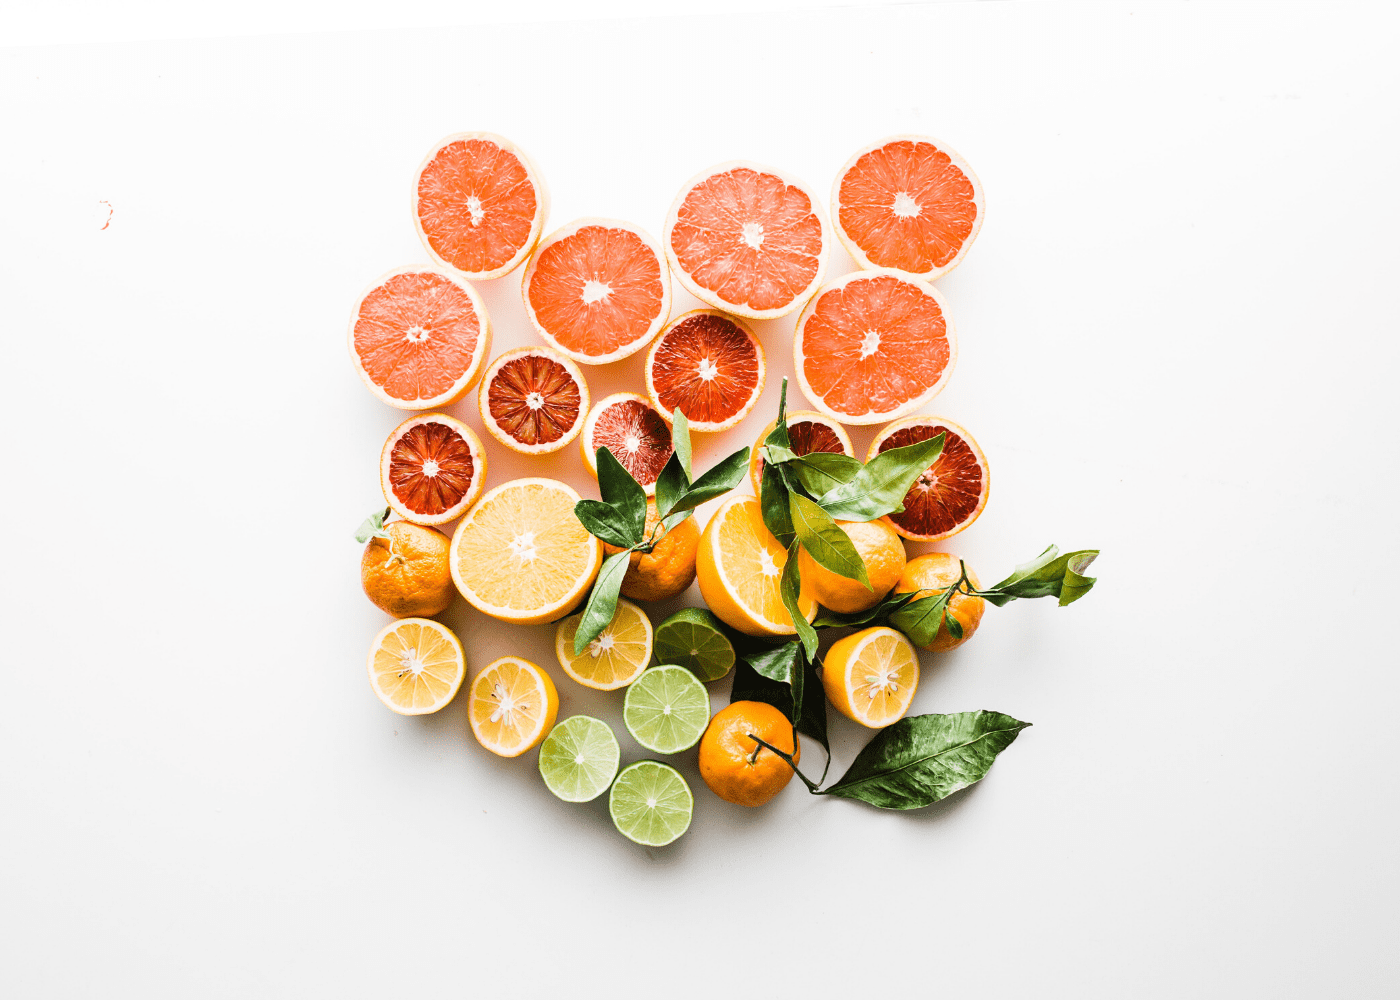 citrus fruits | The best foods to boost your immunity